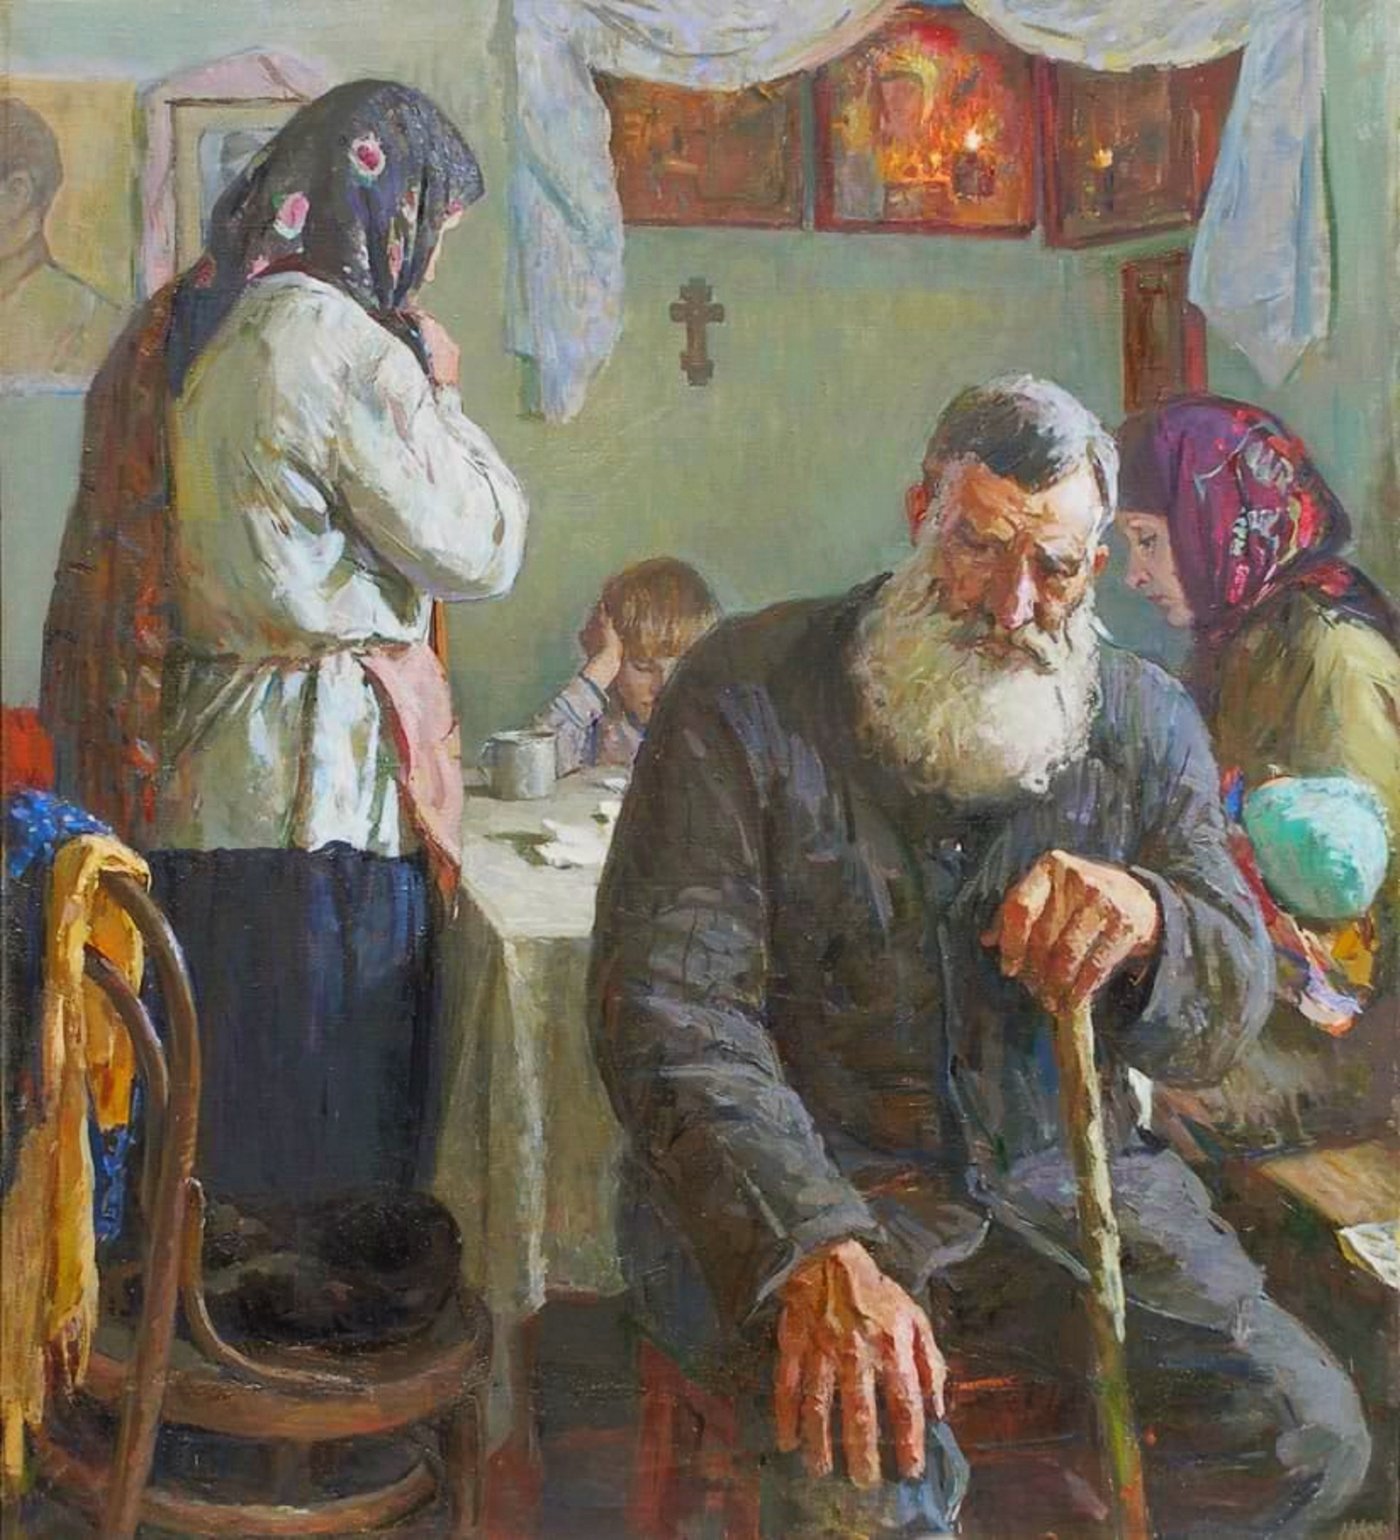 00-mikhail-shorokhov-in-the-war-years-the-notification-of-a-soldiers-death-1986